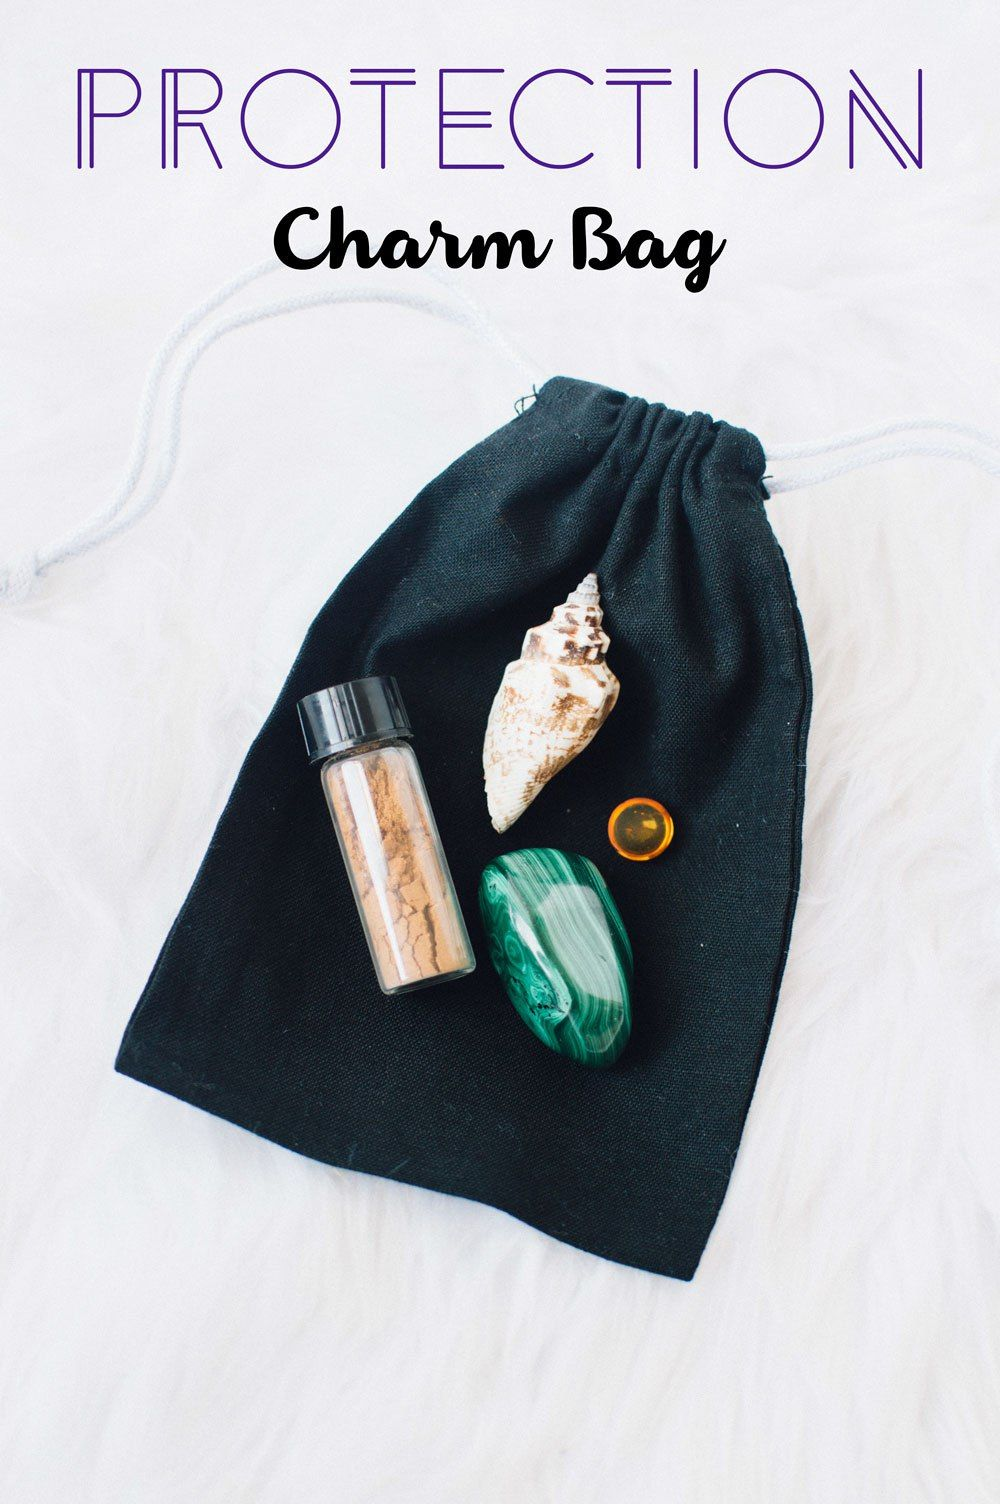 Magic Charm Bags For Protection Love Luck And Health